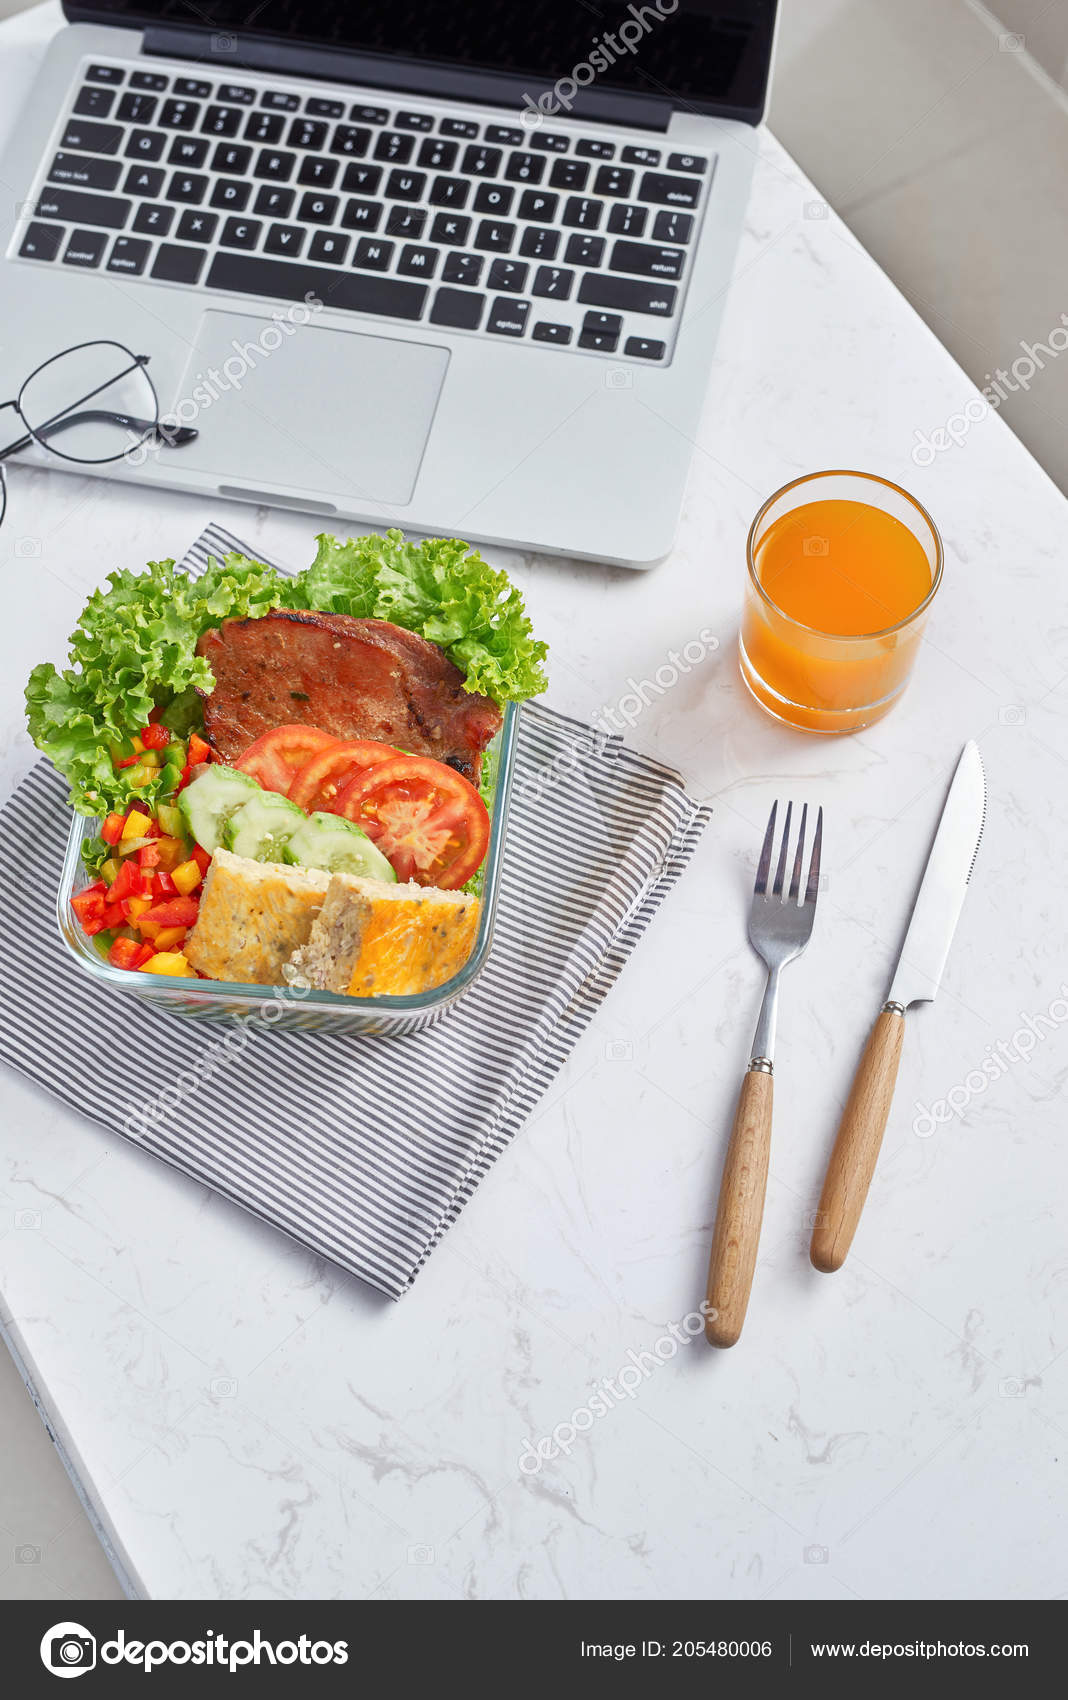 healthy eating lunch work food office stock photo makidotvn